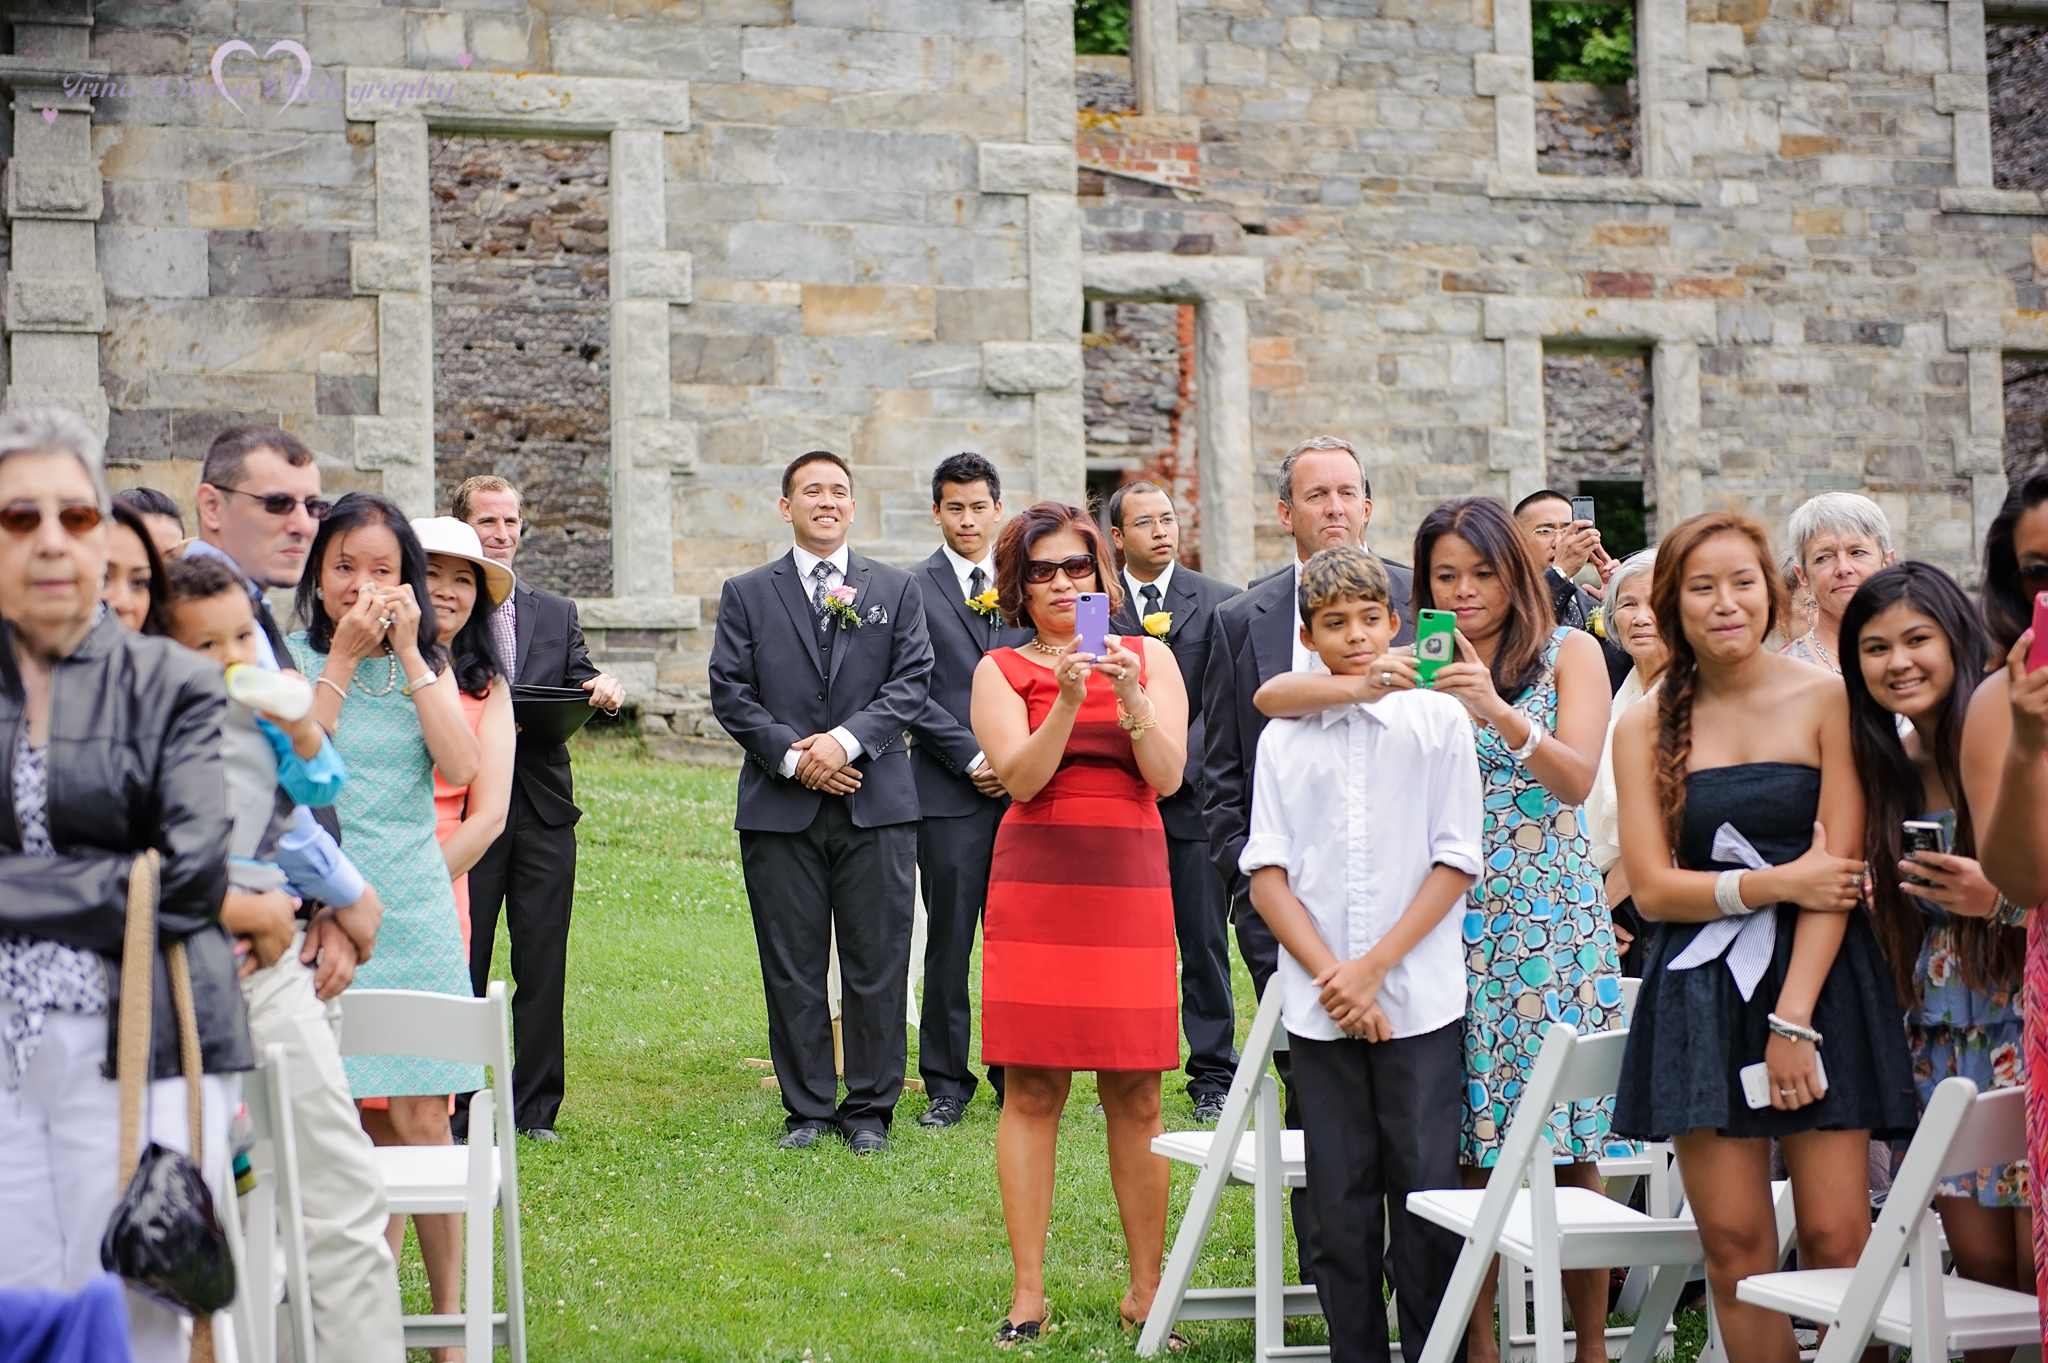 Groom's reaction seeing bride for the first time at their wedding ceremony at the Goddard Mansion in Fort Williams Park, Maine.